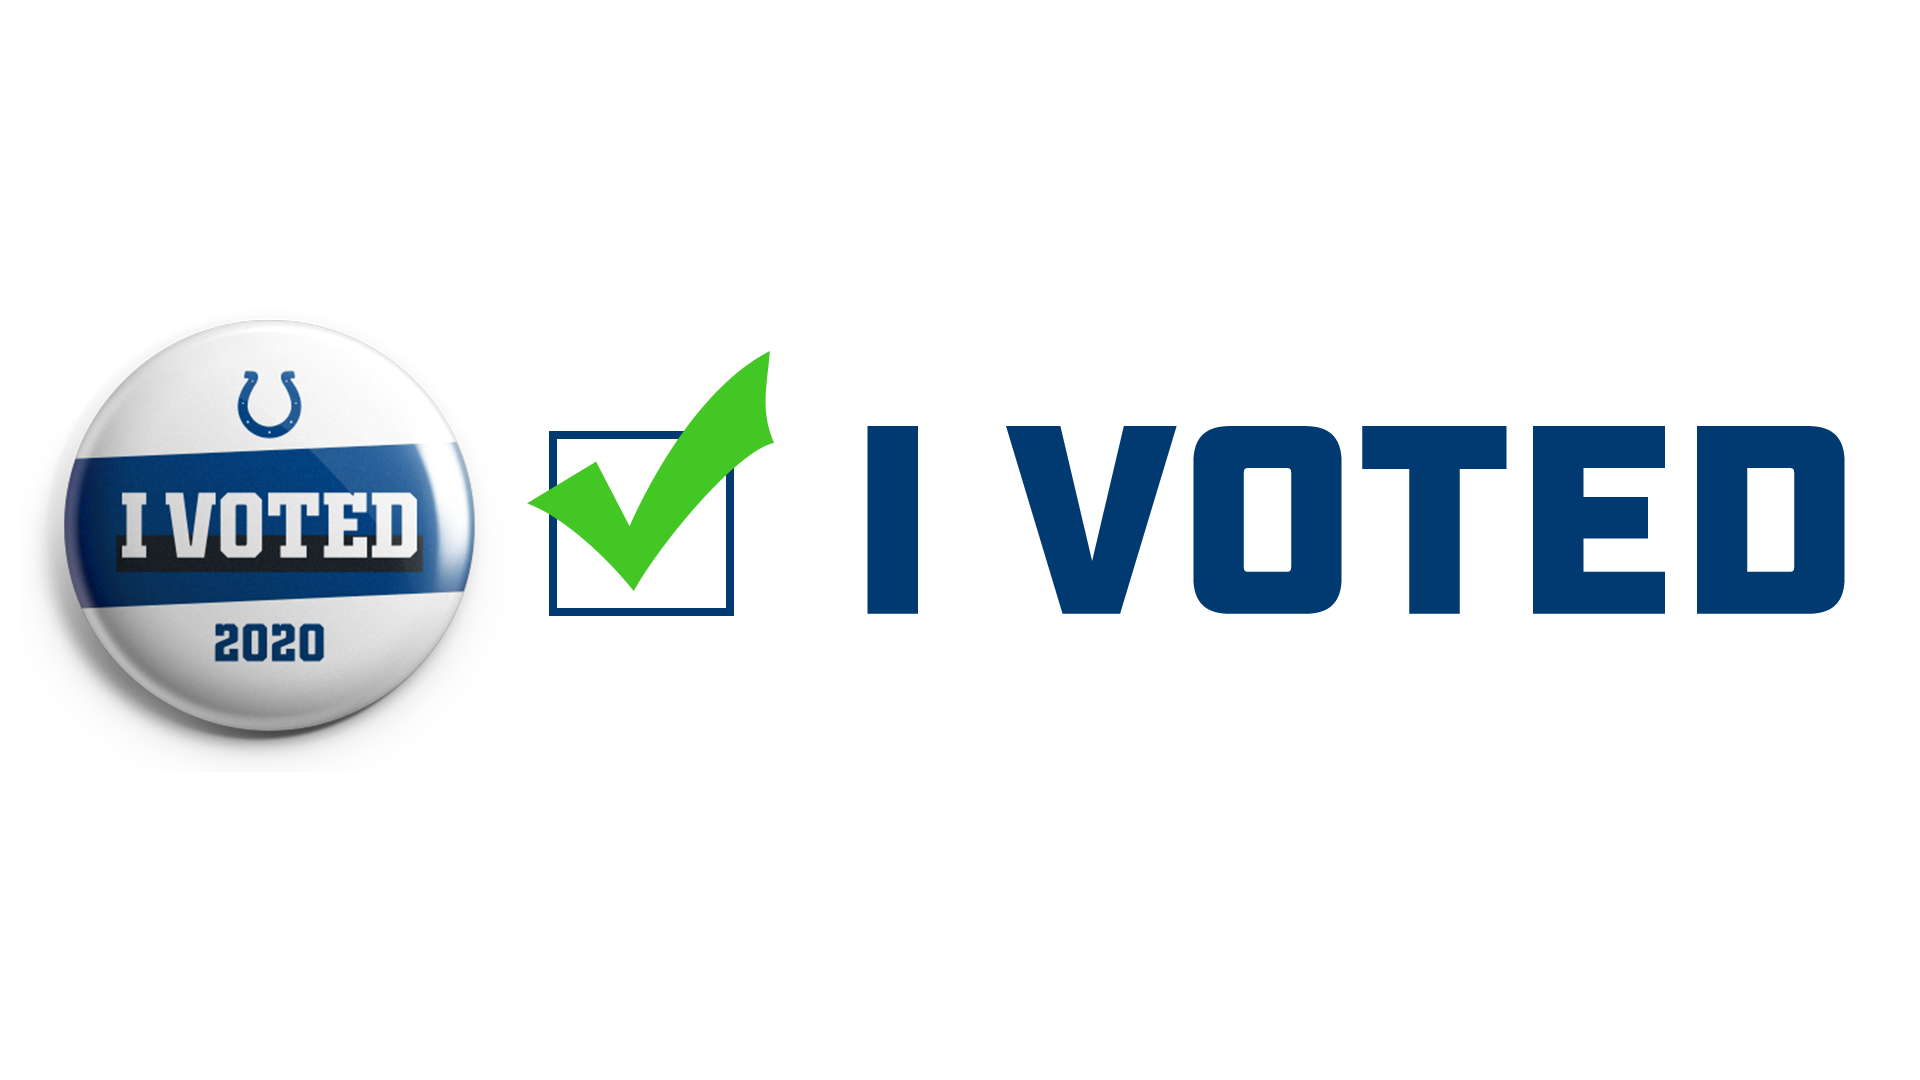 Indianapolis Colts For The Future: I Voted Button